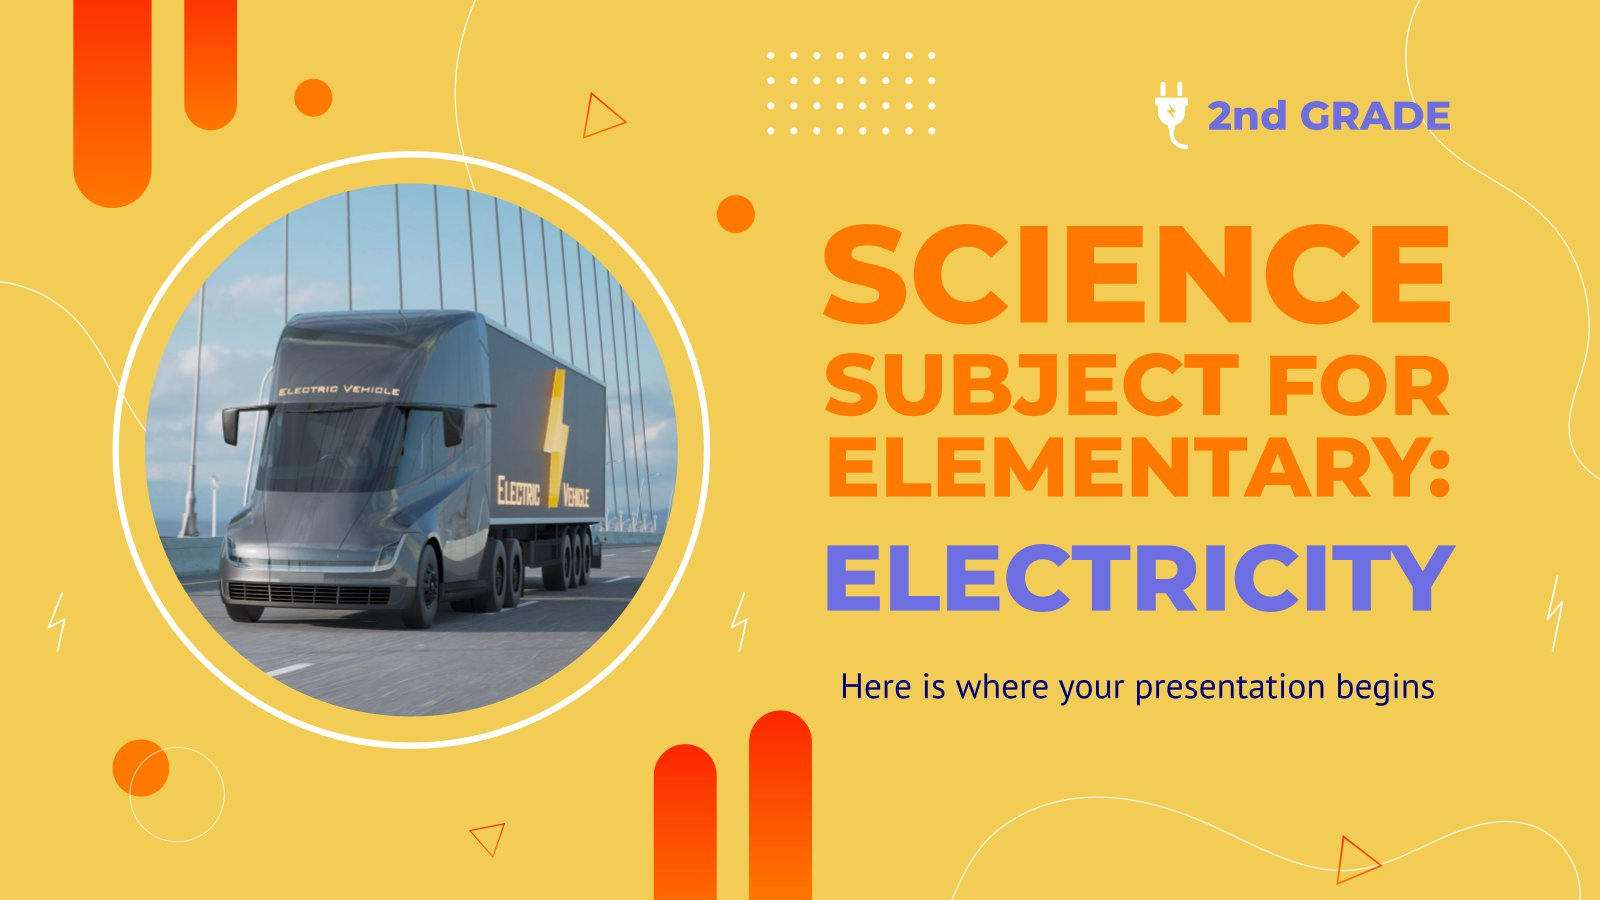 Science Subject for Elementary - 2nd Grade: Electricity presentation template